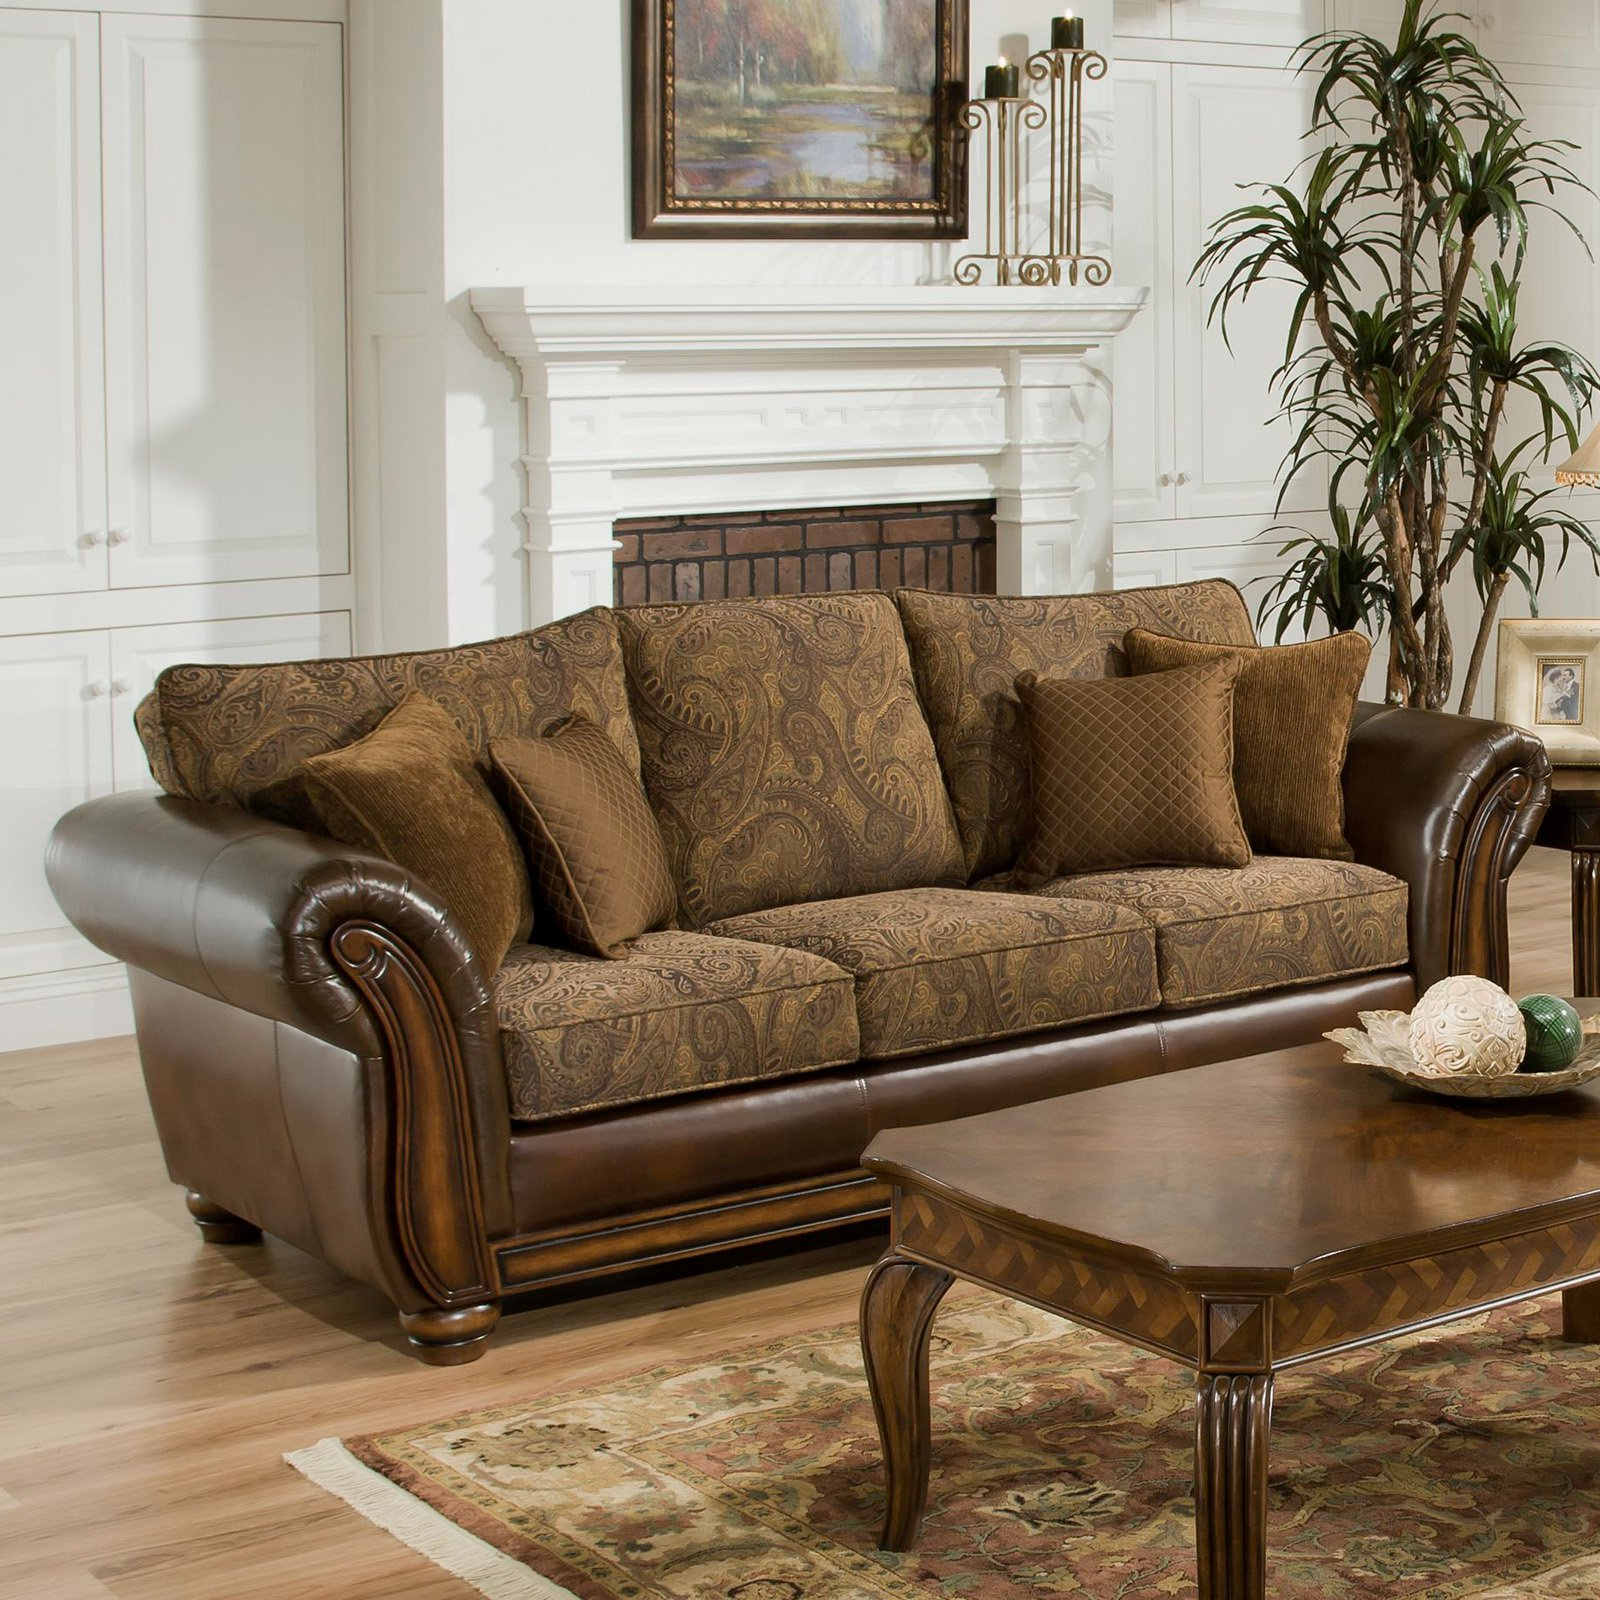 Simmons Zephyr Vintage Leather And Chenille Sofa With Accent Pillows